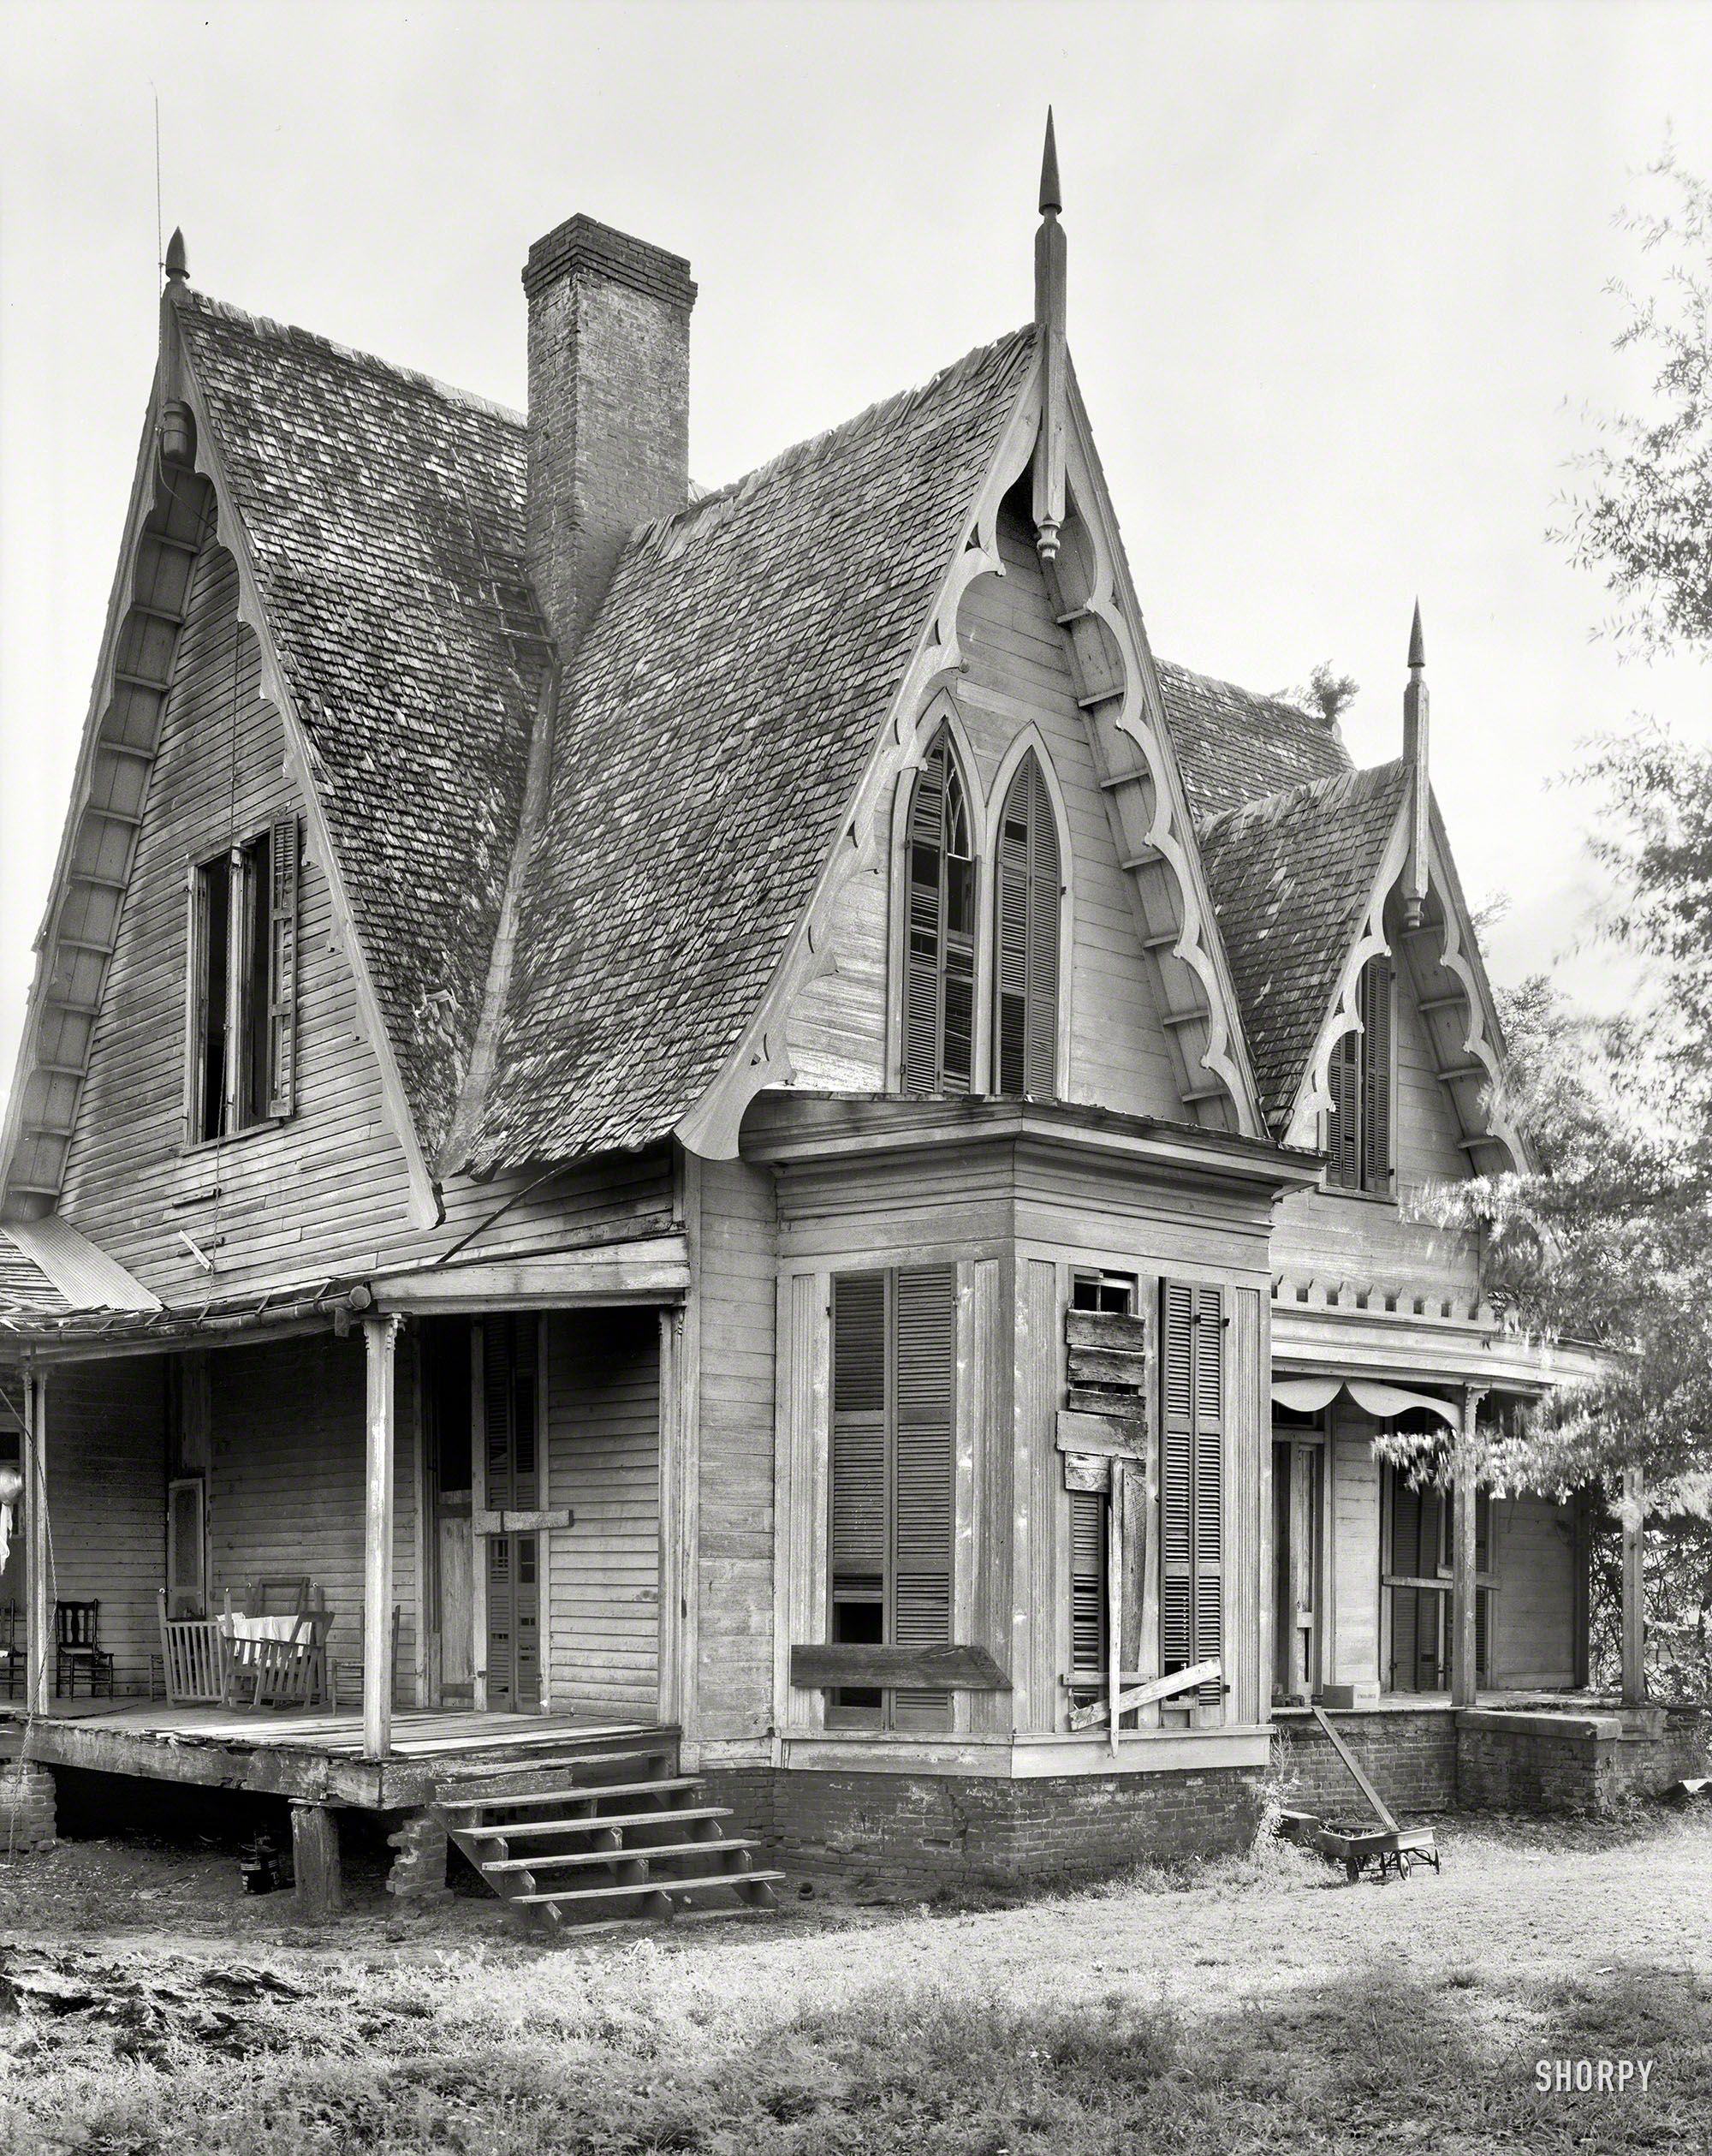 Shorpy Historical Photo Archive 1939 Knight House